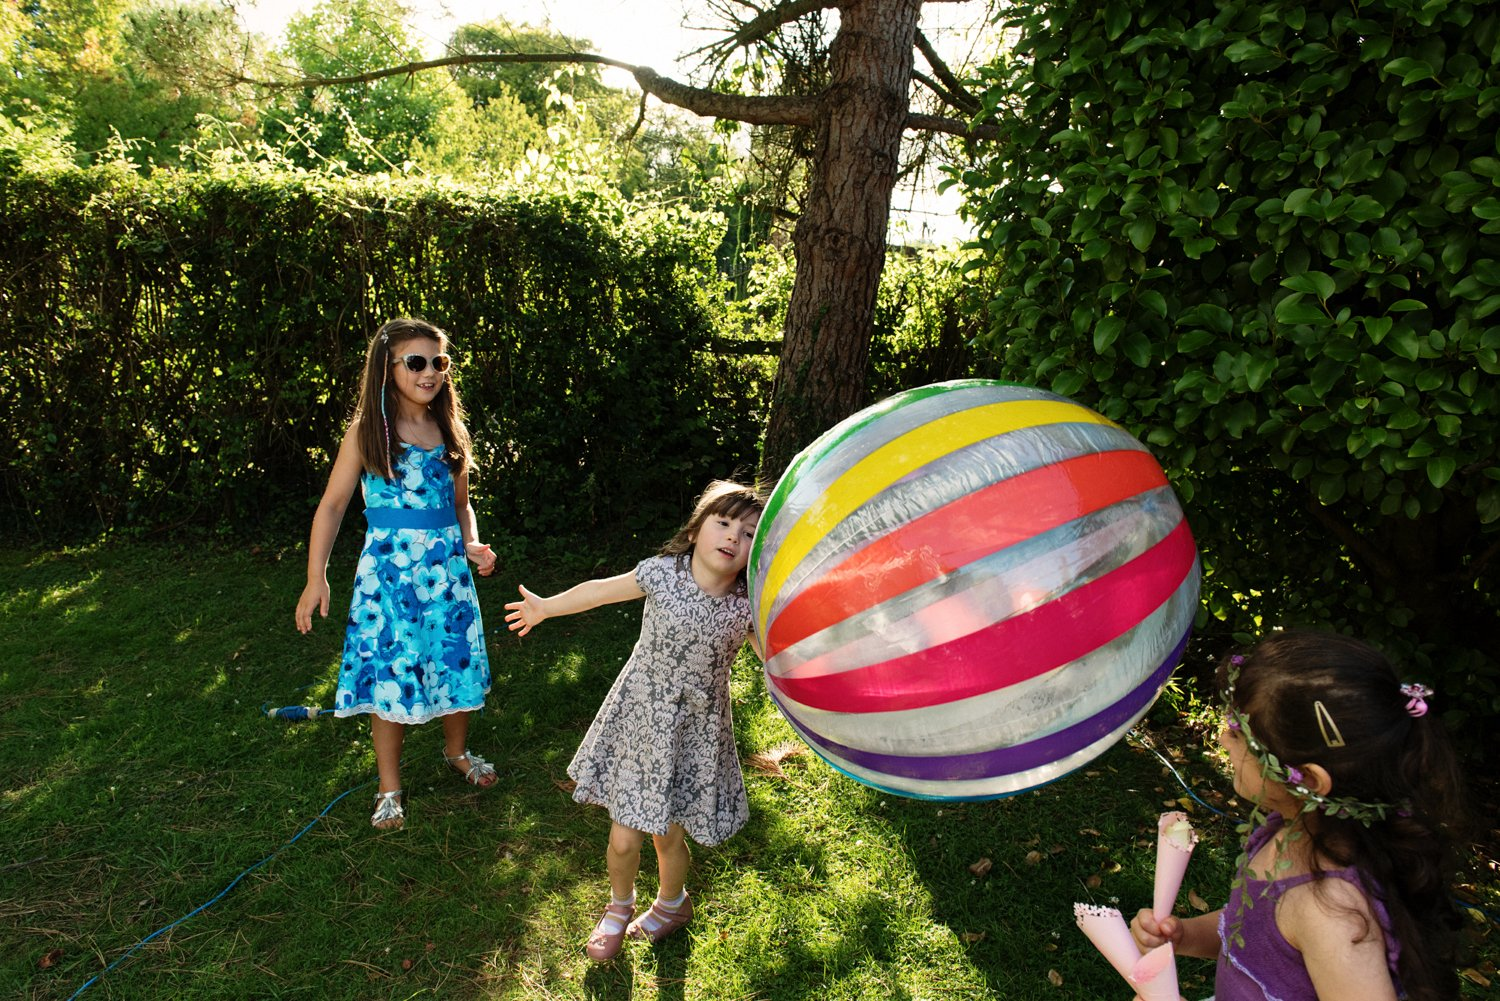 candid picture girl playing giant ball Old Luxters Barn Wedding Photography